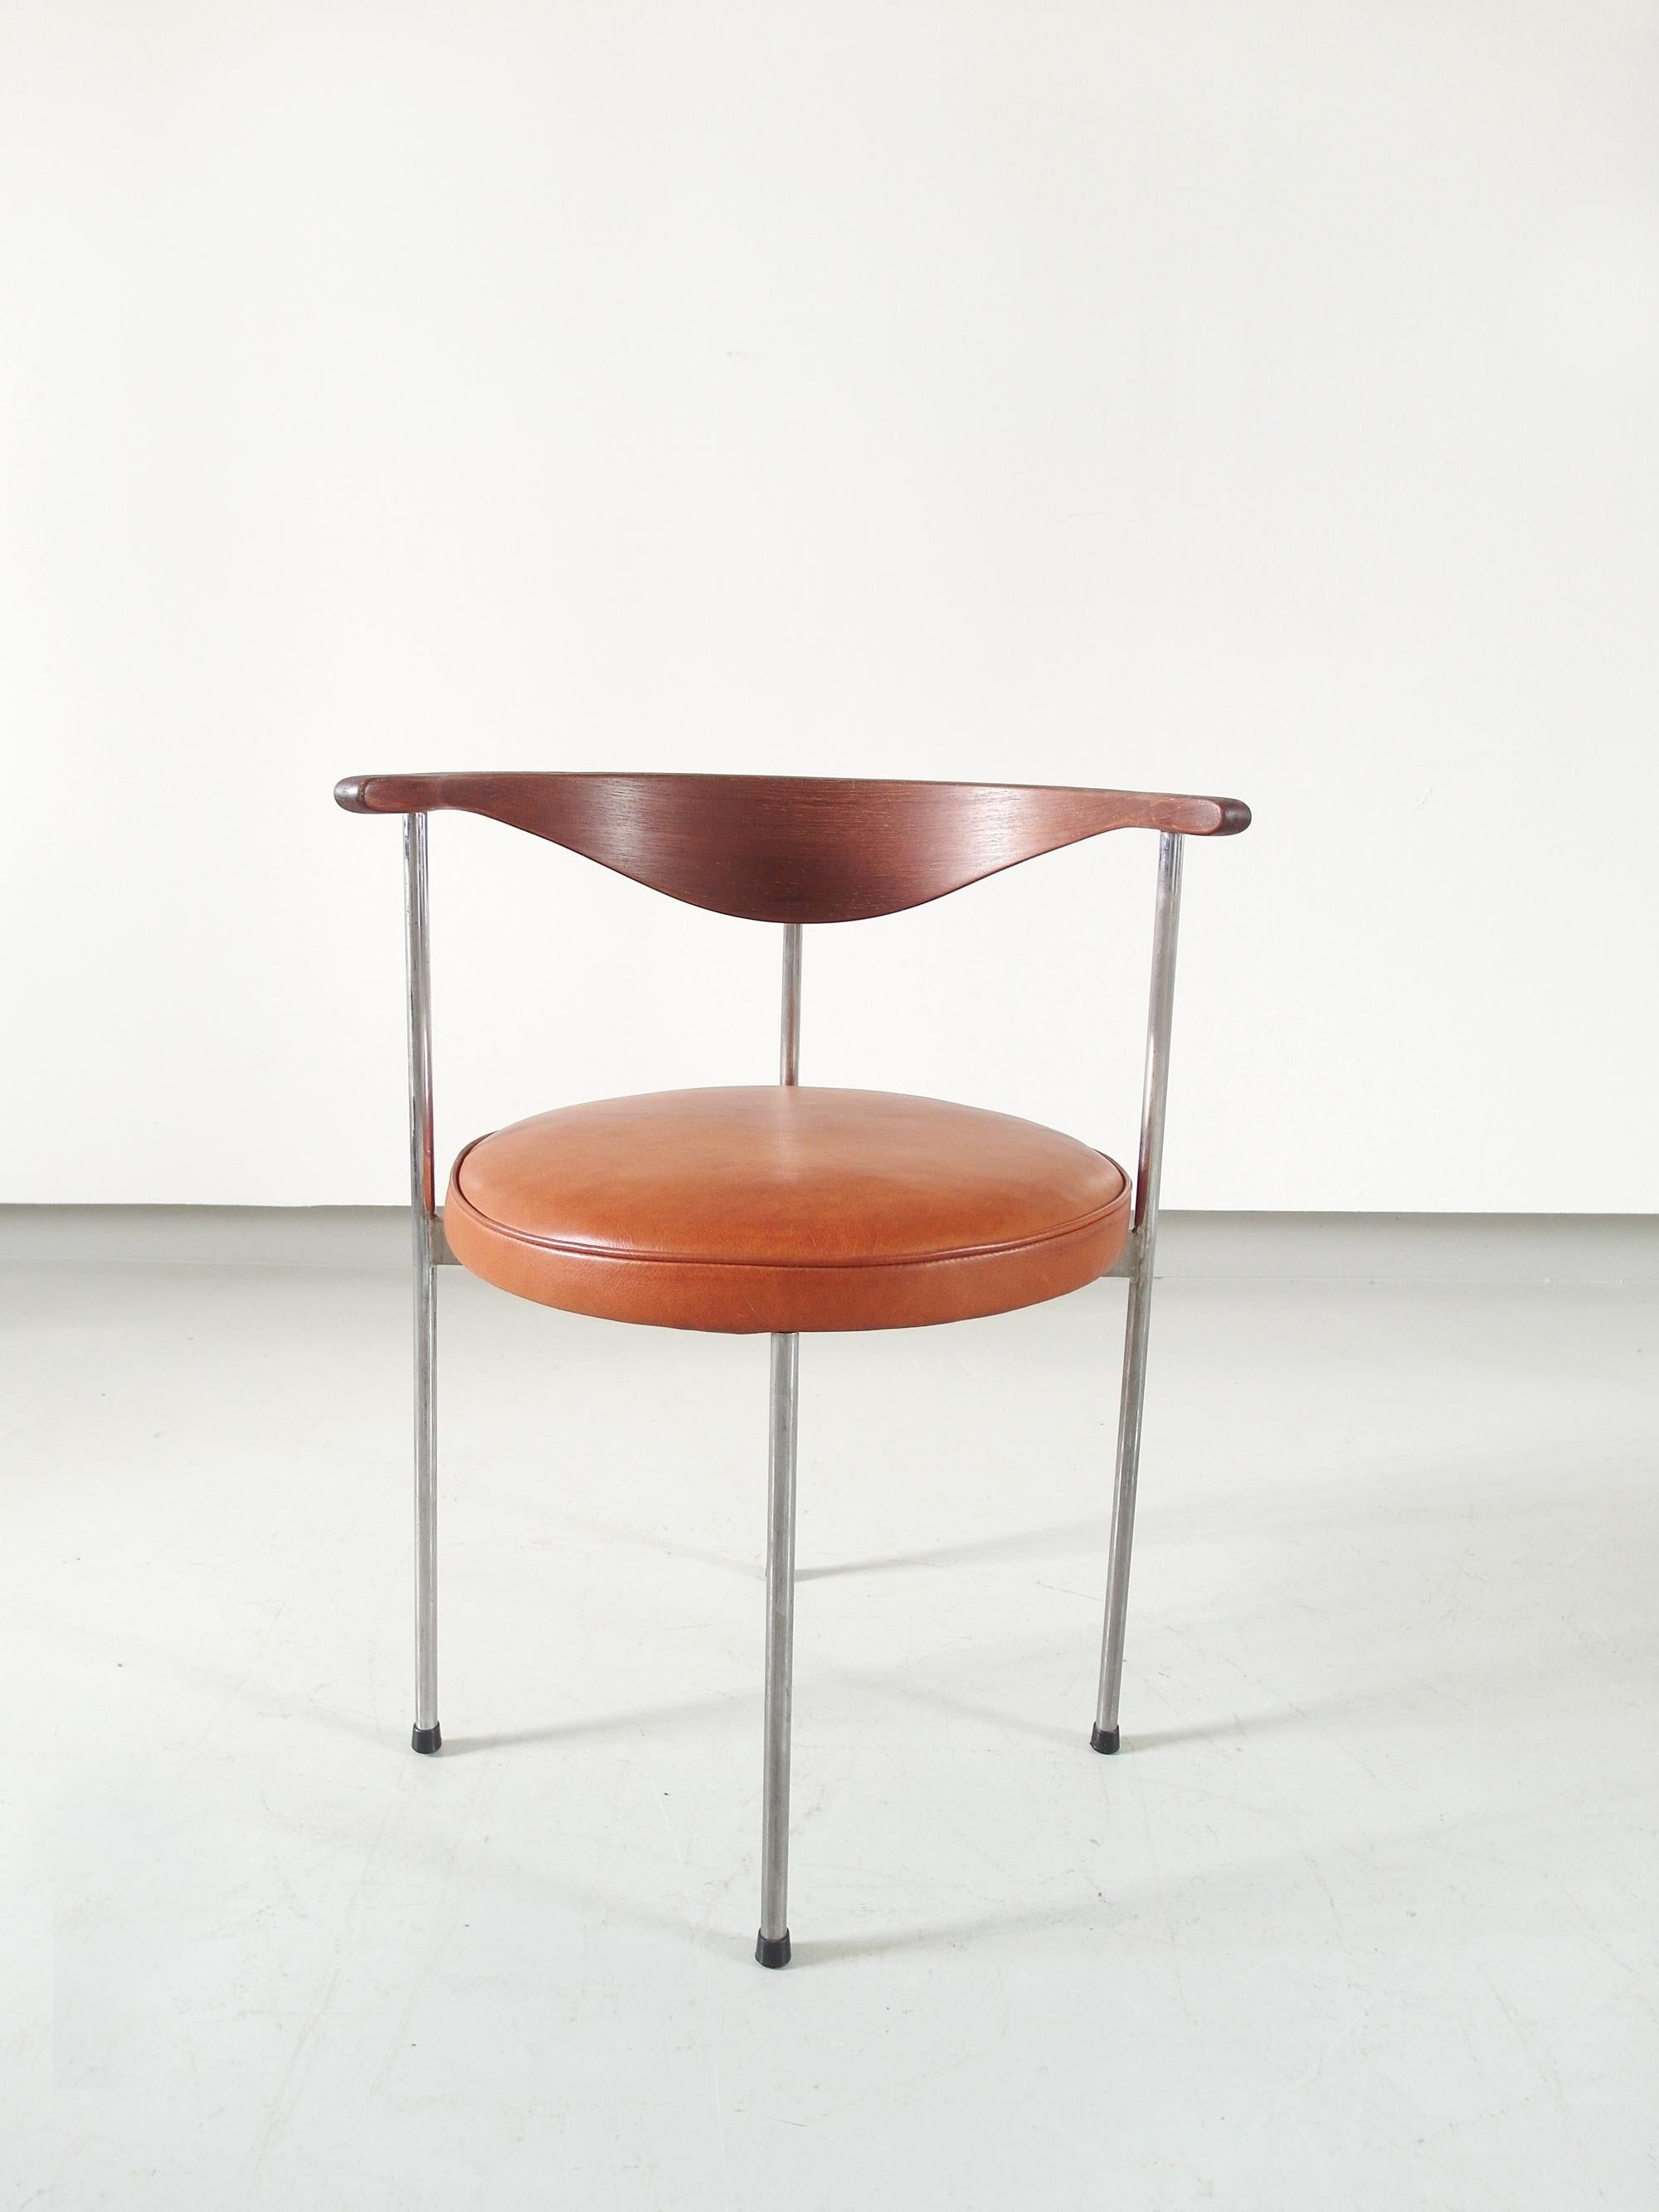 Minimalist Desk Chair Scandinavian Desk Side Chair By Frederik Sieck For Fritz Hansen Denmark 1964